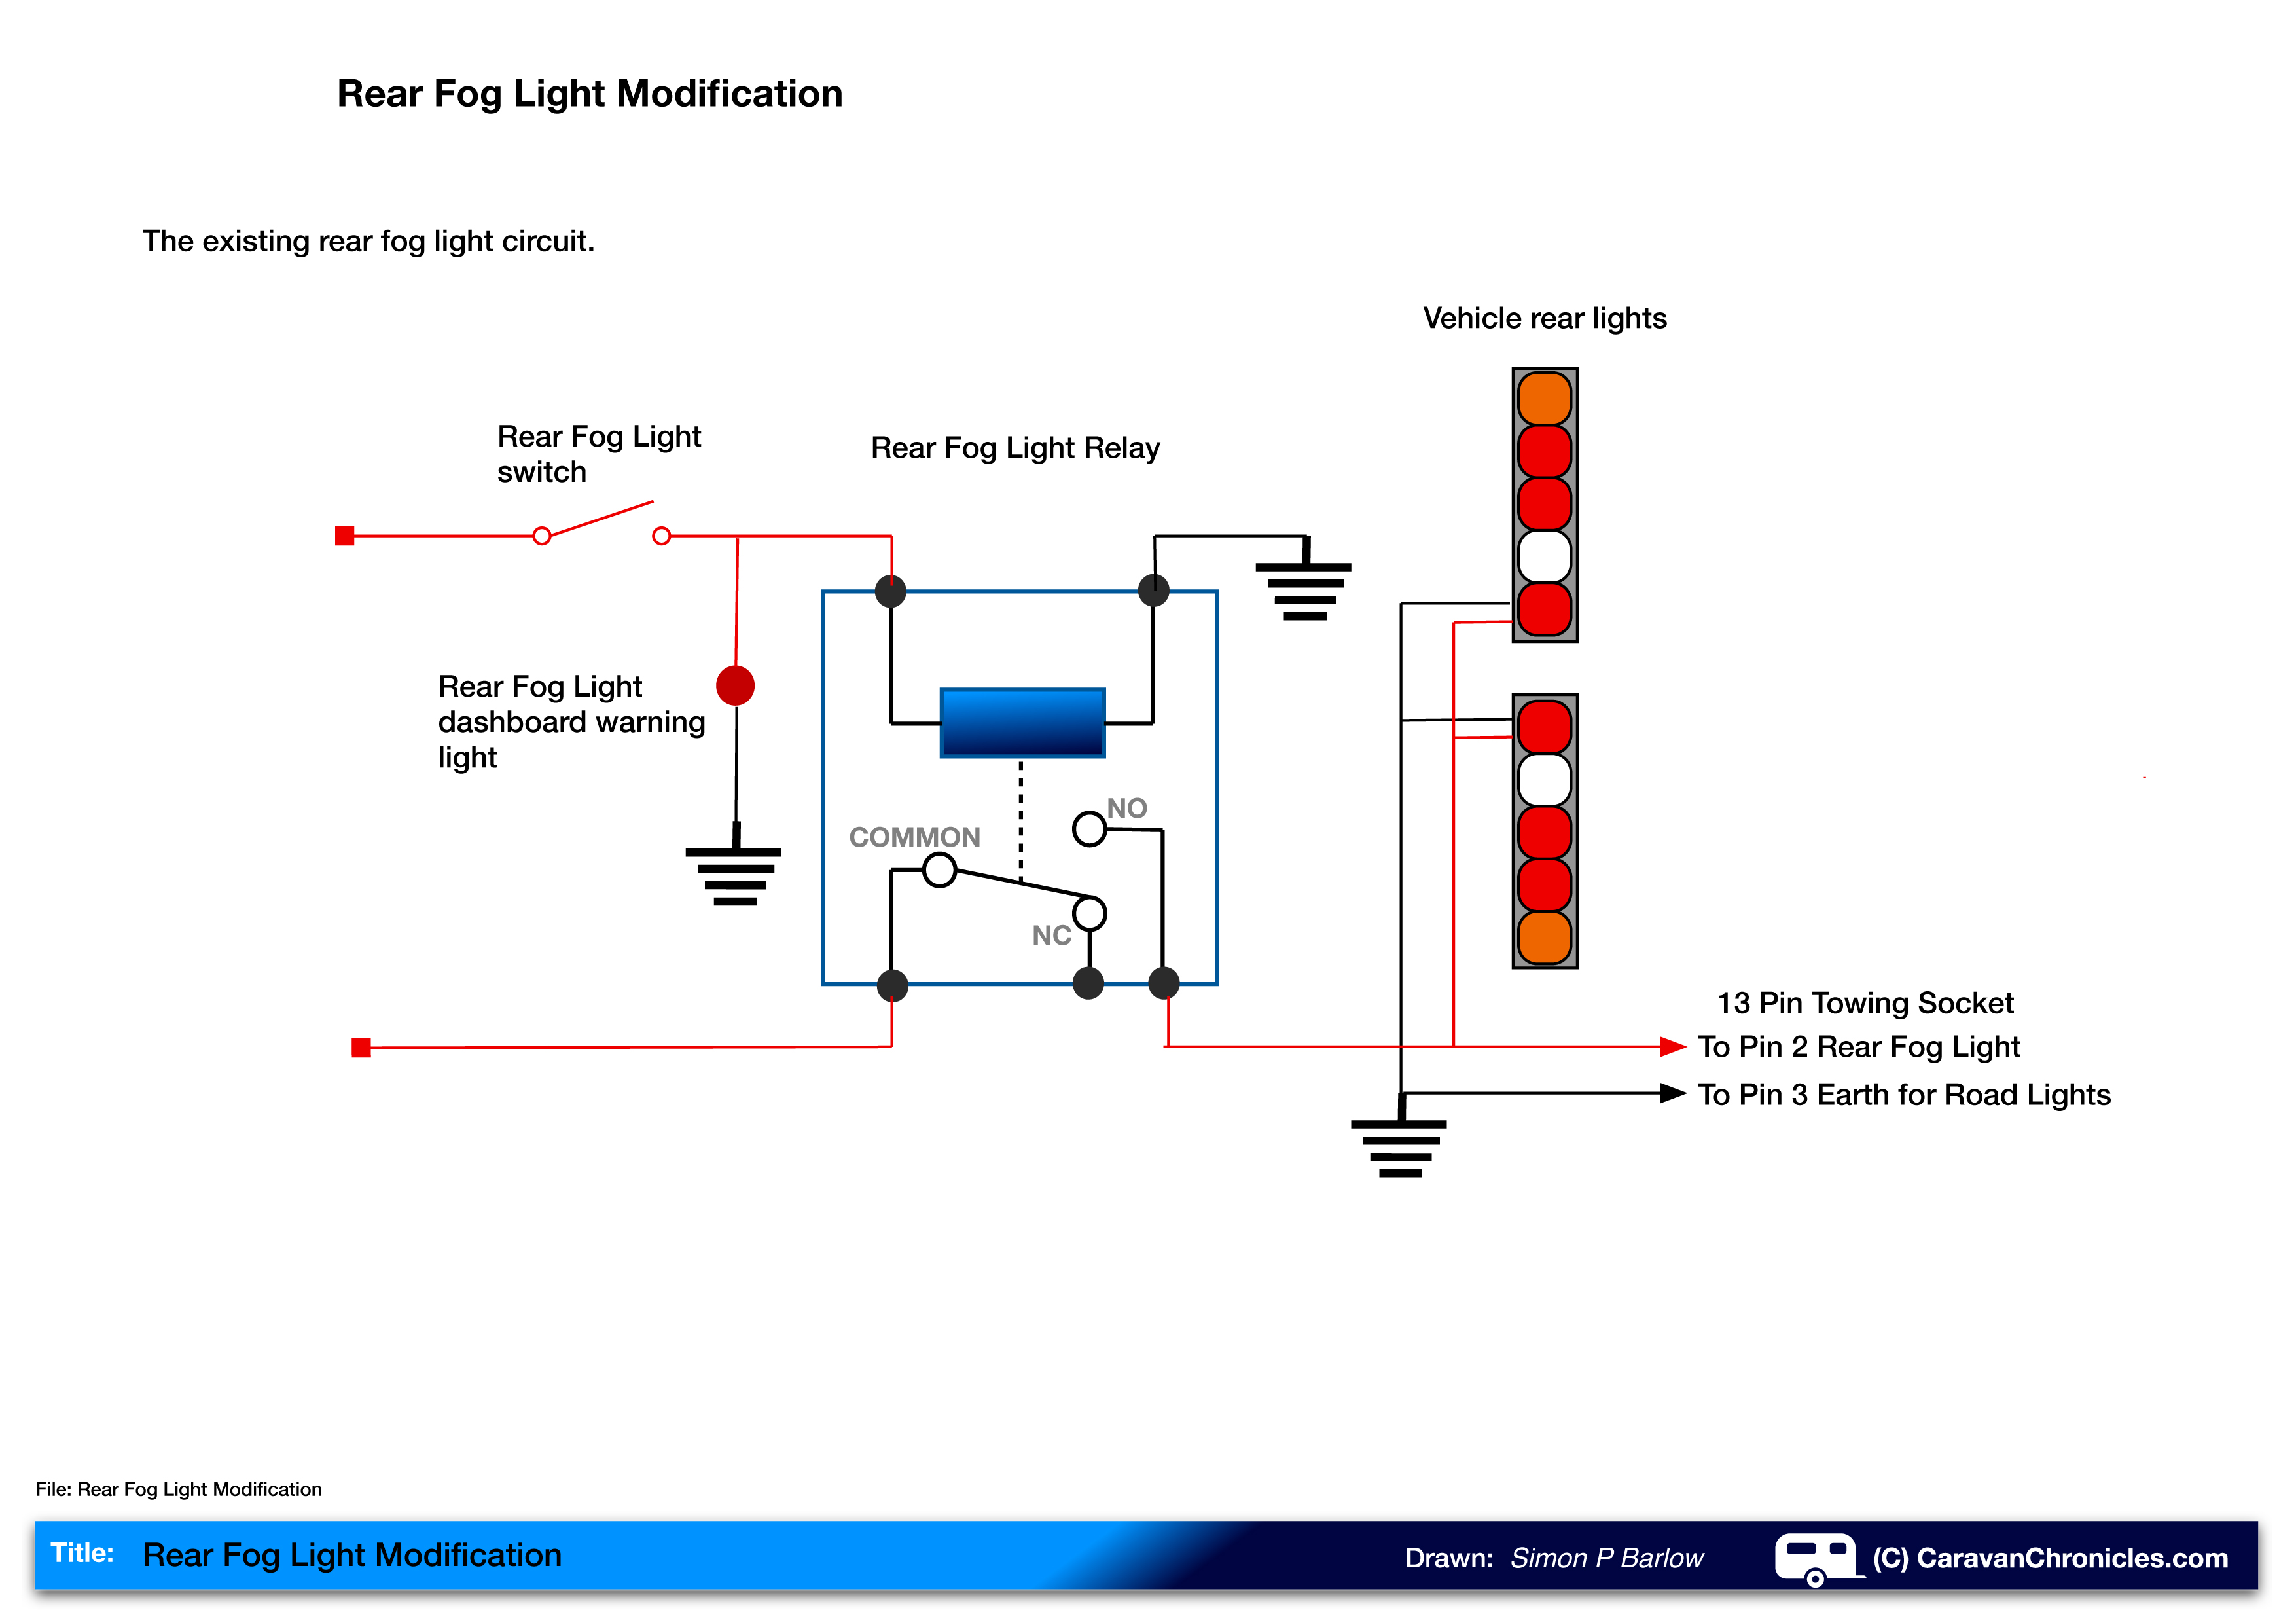 modify your rear fog lights caravan chronicles if we look at the drawing above we can see that turning on the fog light switch energises the relay and that allows current to flow to the rear fog lights